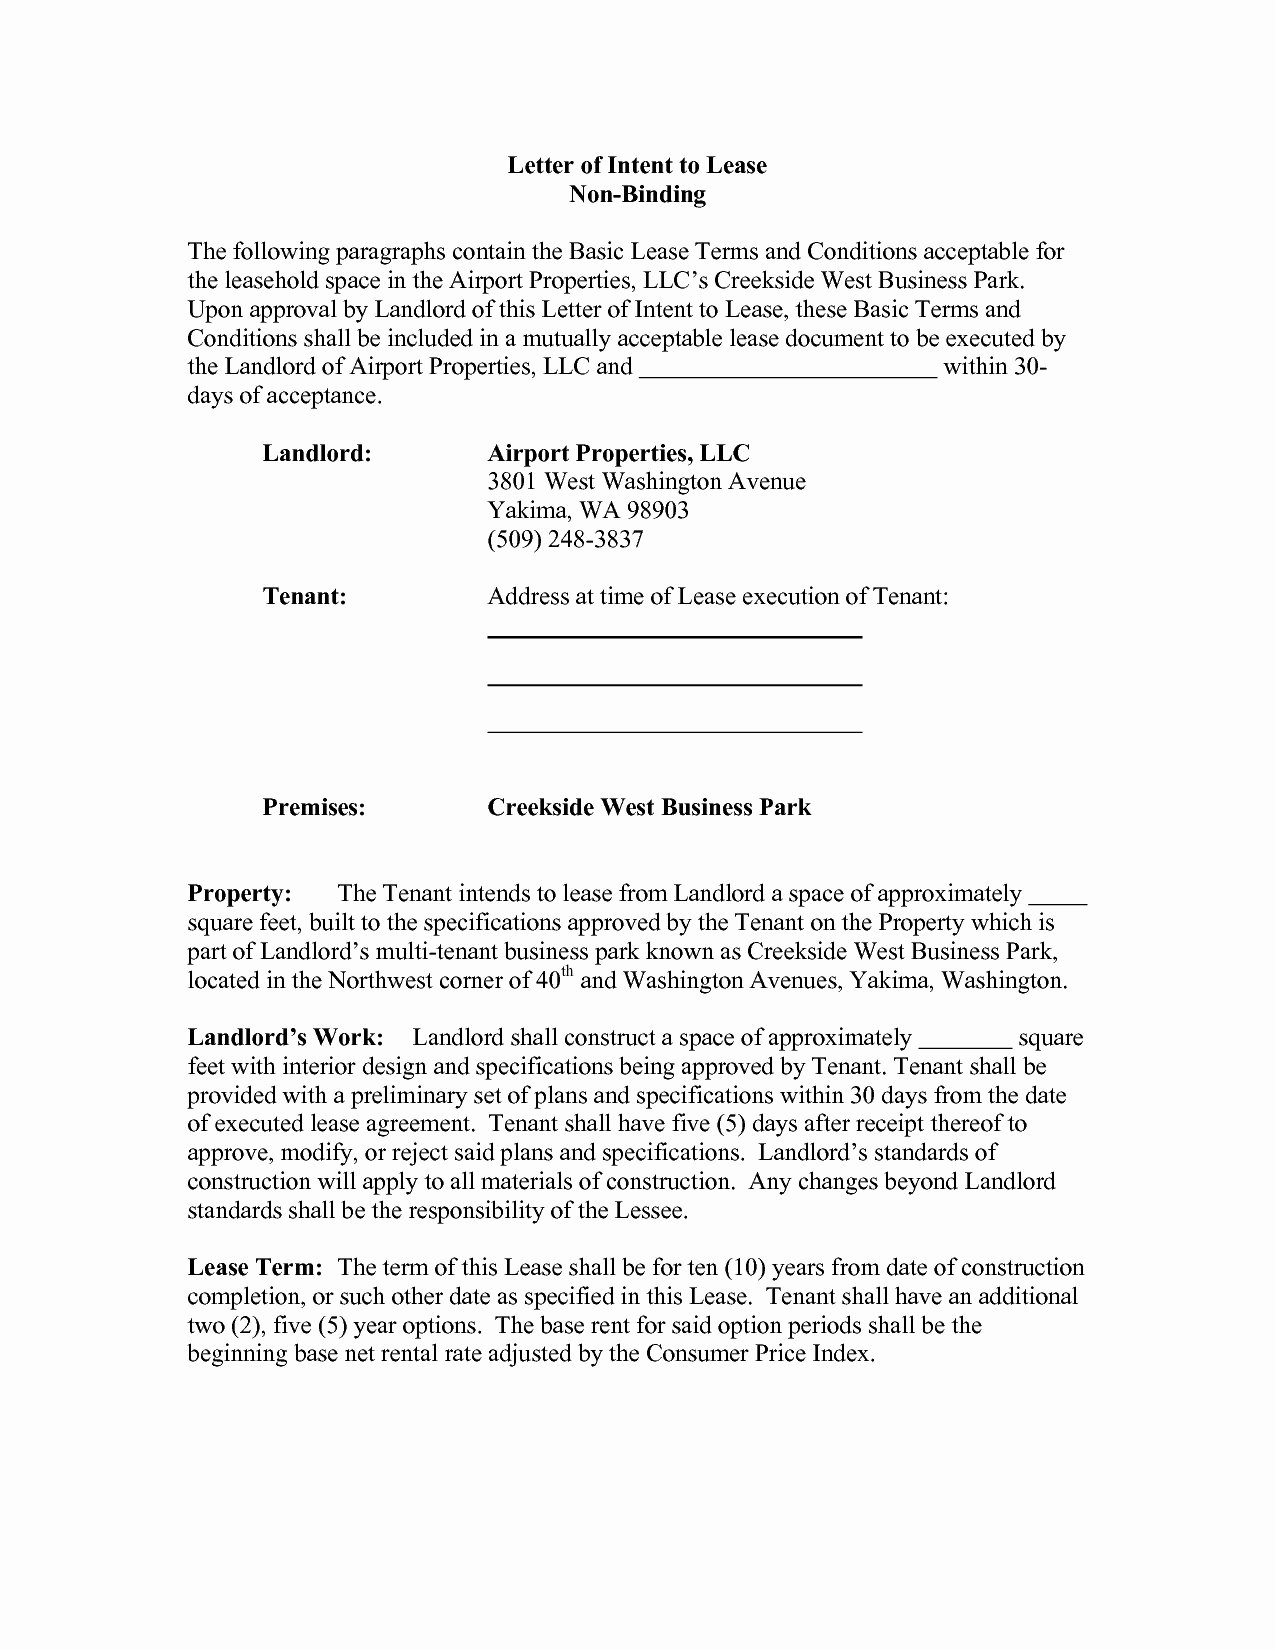 Free Sample Letter Of Intent to Lease A Commercial Space Beautiful Letter Intent to Lease Mercial Space Template